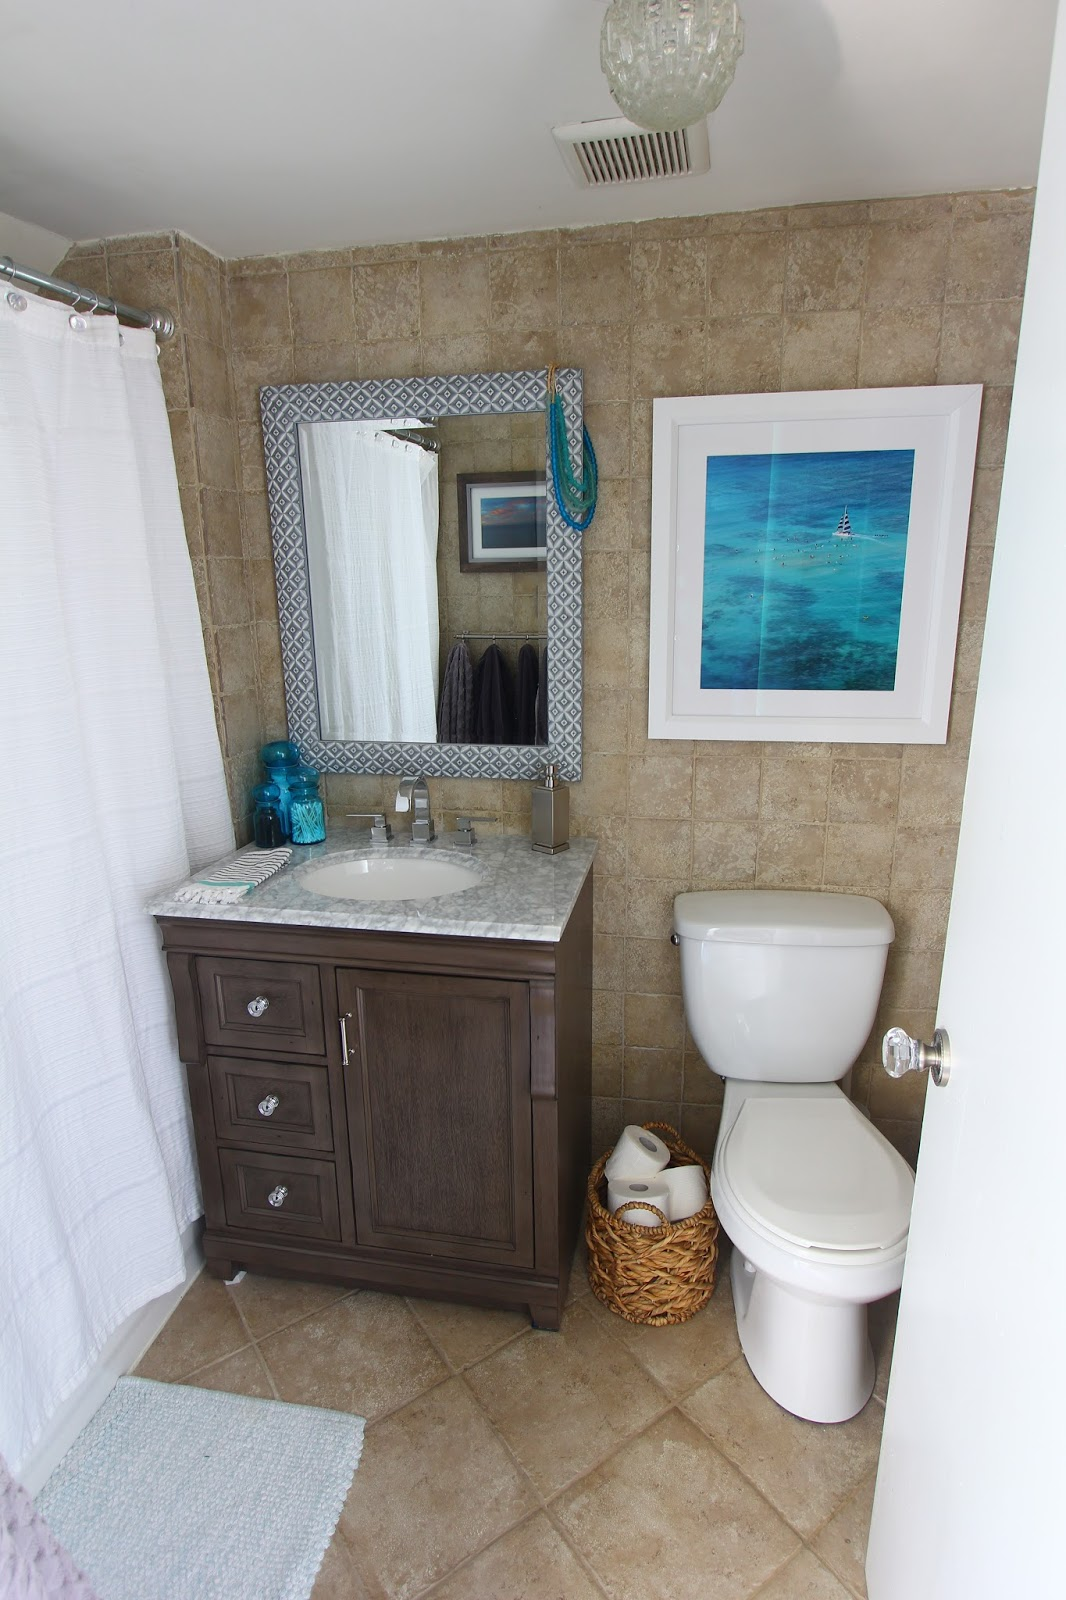 Marvelous I would love to rip out all the faux stone beige tile that covers my bathroom floor to ceiling and redo the whole shower area replace the toilet